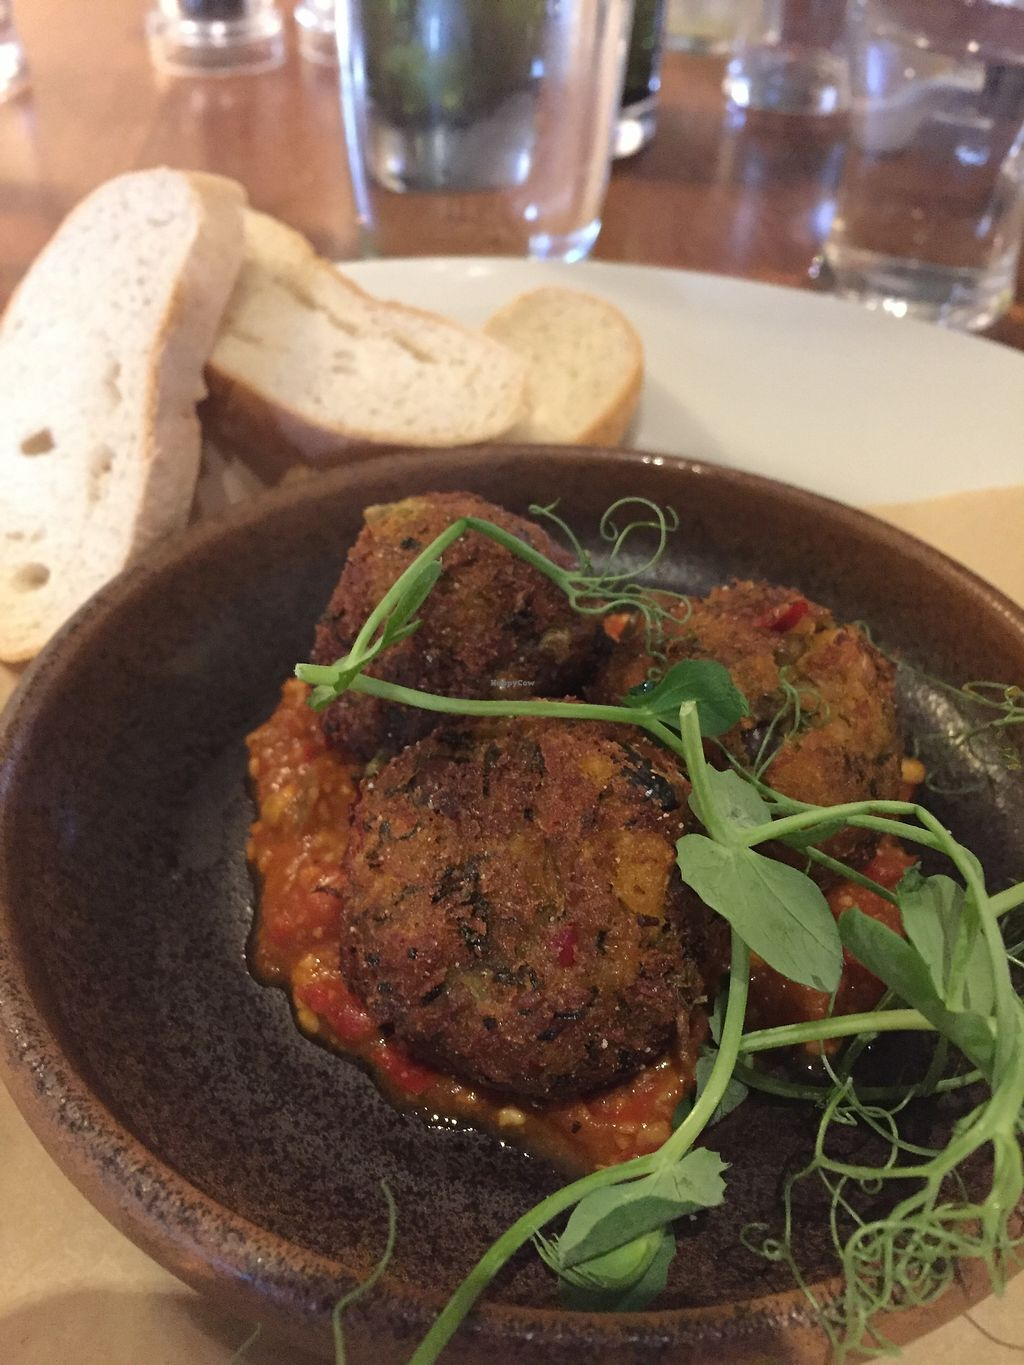 """Photo of The Three Horseshoes  by <a href=""""/members/profile/stephenwelleruk"""">stephenwelleruk</a> <br/>Chickpea & Lentil Falafel for starters <br/> February 12, 2018  - <a href='/contact/abuse/image/111645/358474'>Report</a>"""